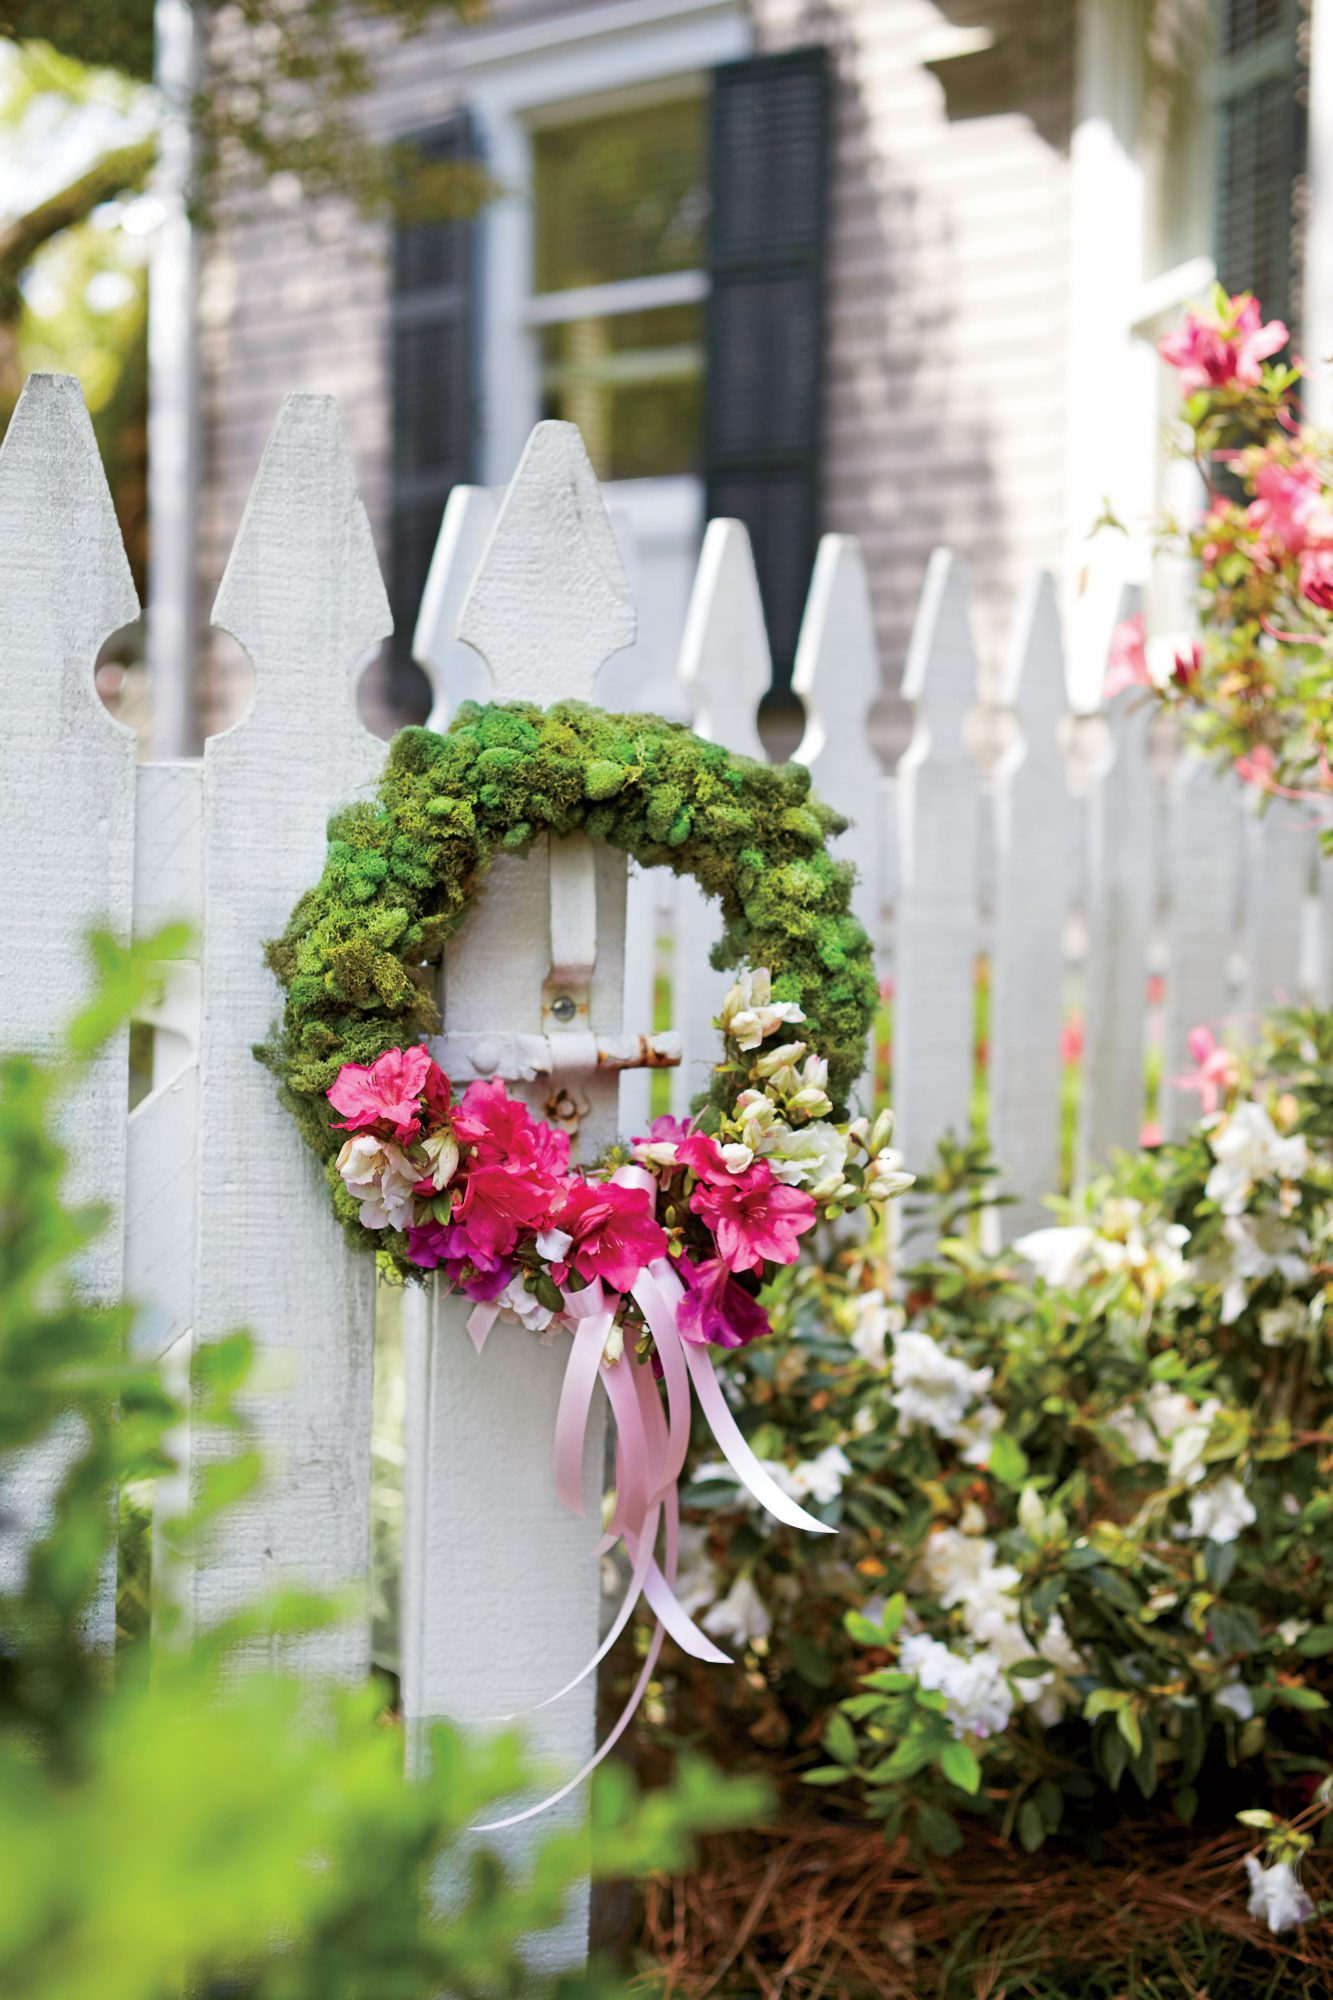 Azalea Flower Spring Party Garden Wreath